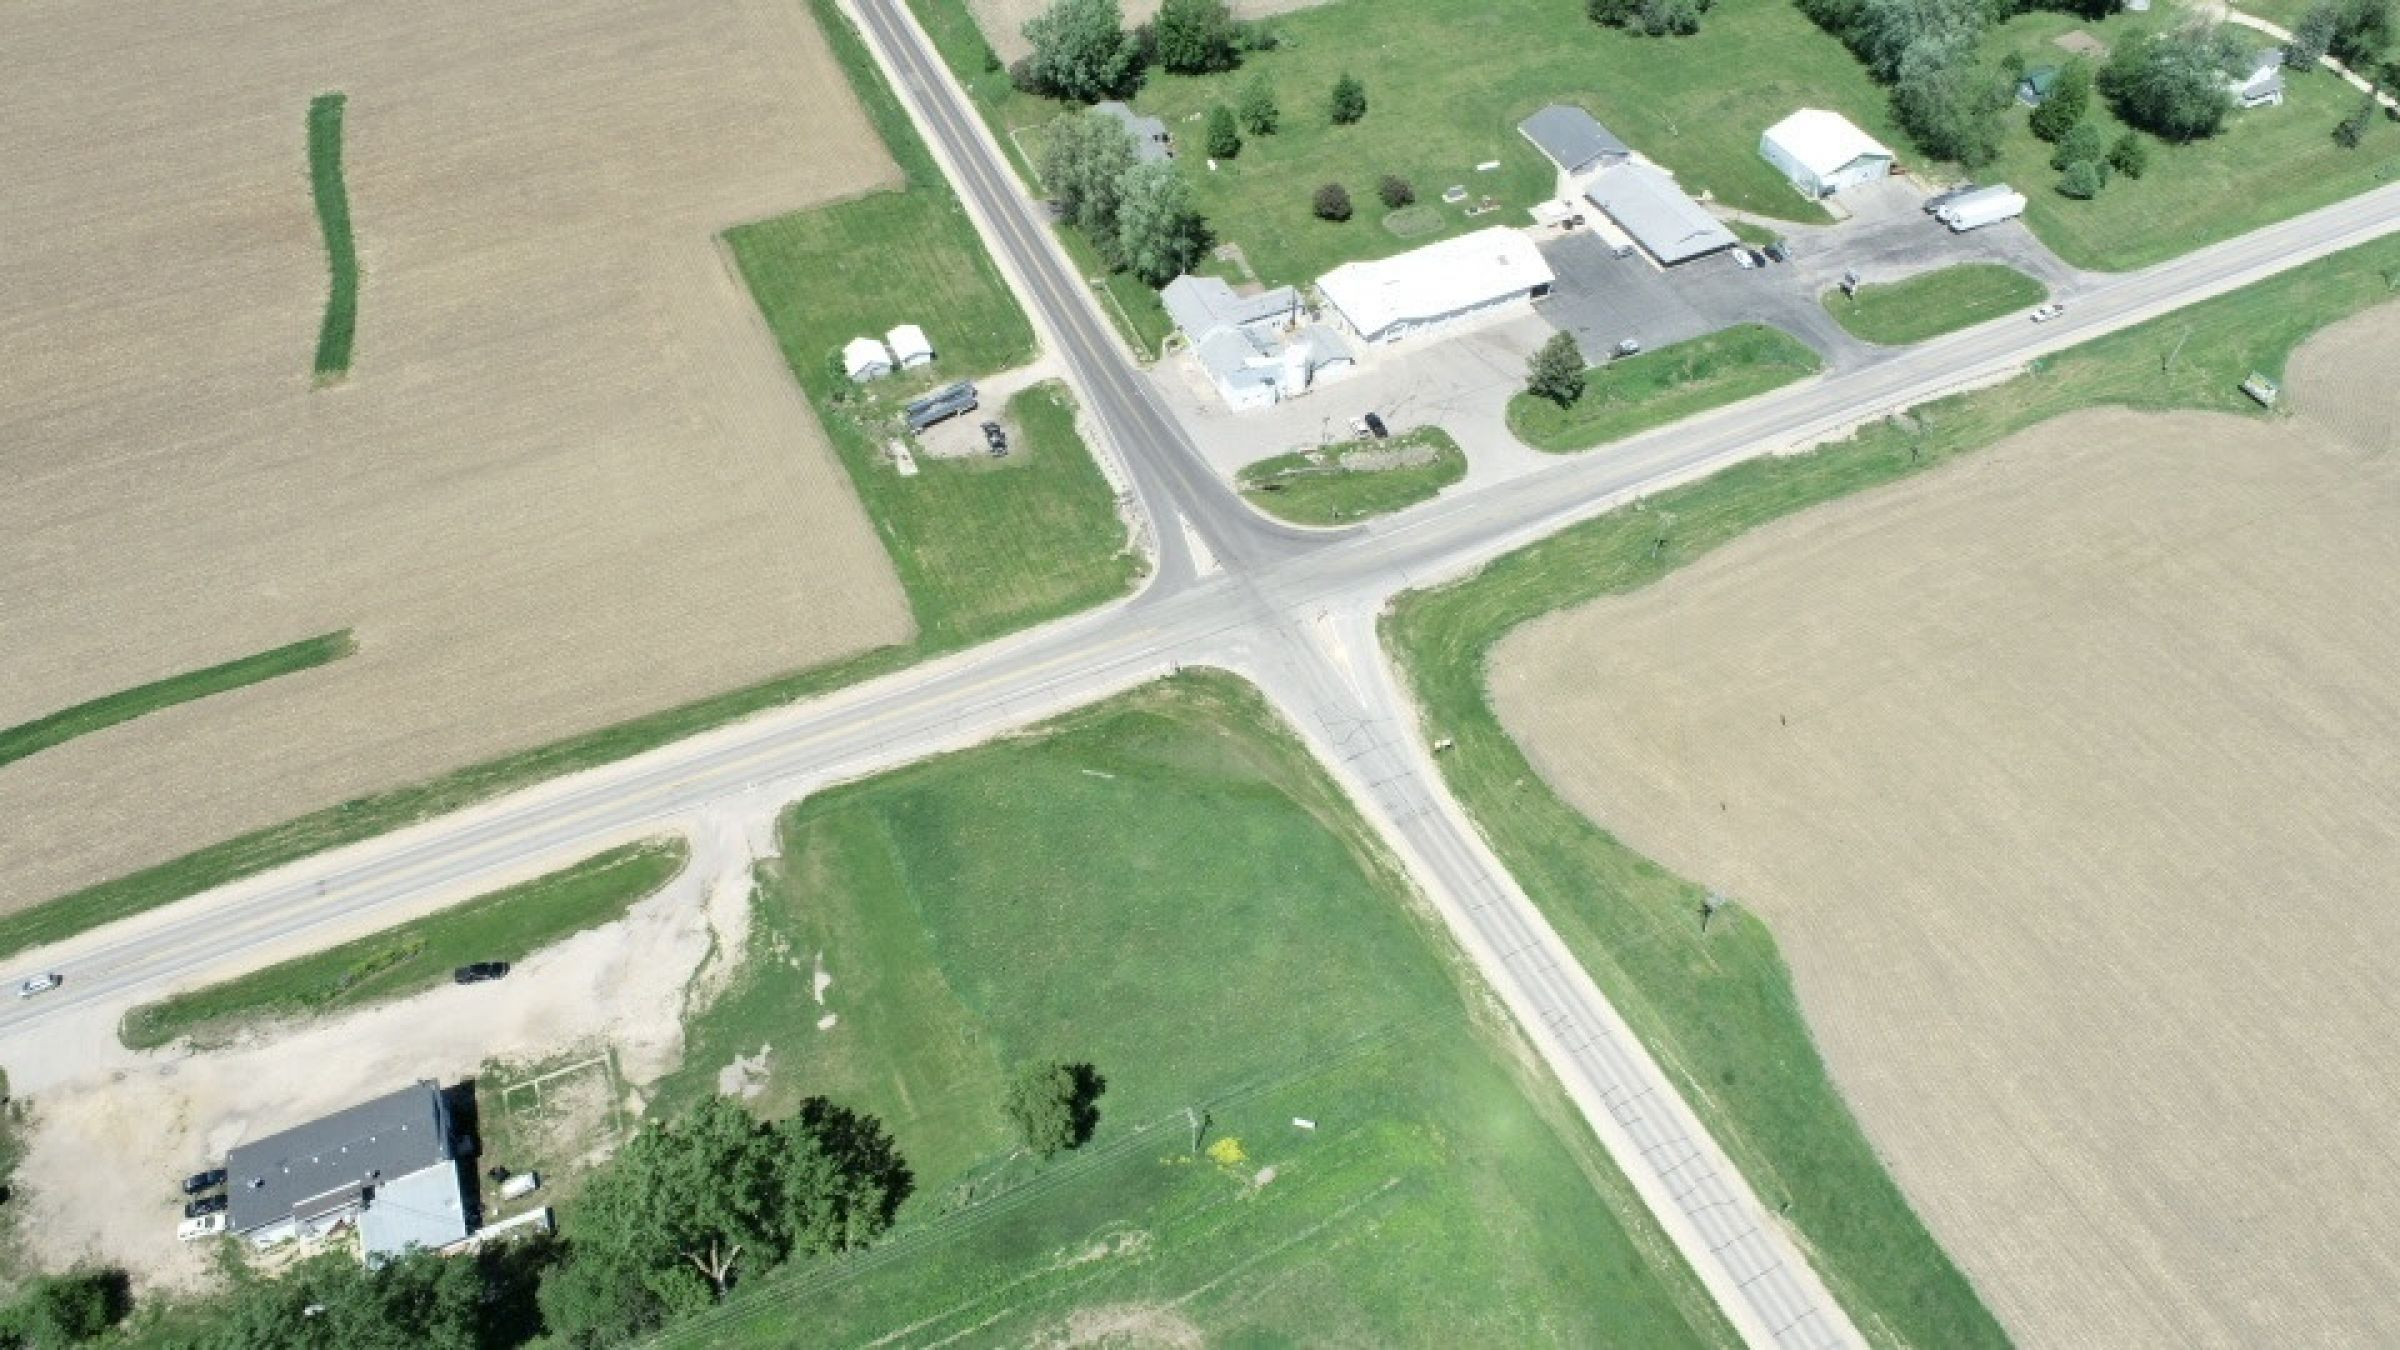 land-commercial-lafayette-county-wisconsin-1-acres-listing-number-15560-9-2021-05-28-185525.jpg